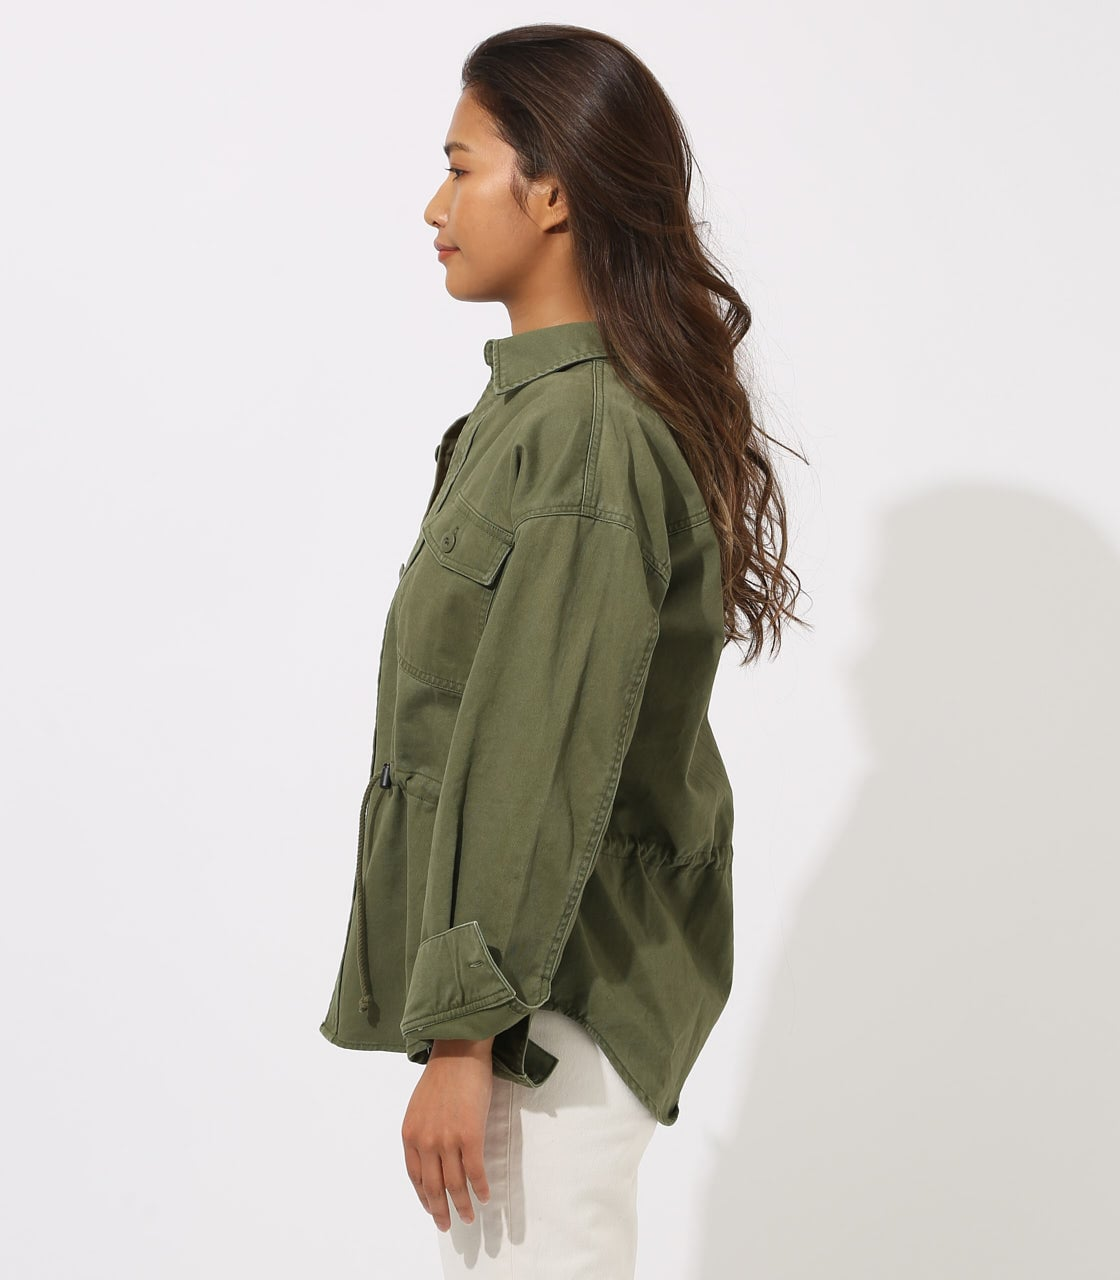 【AZUL BY MOUSSY】Military Blouson 詳細画像 L/KHA 6